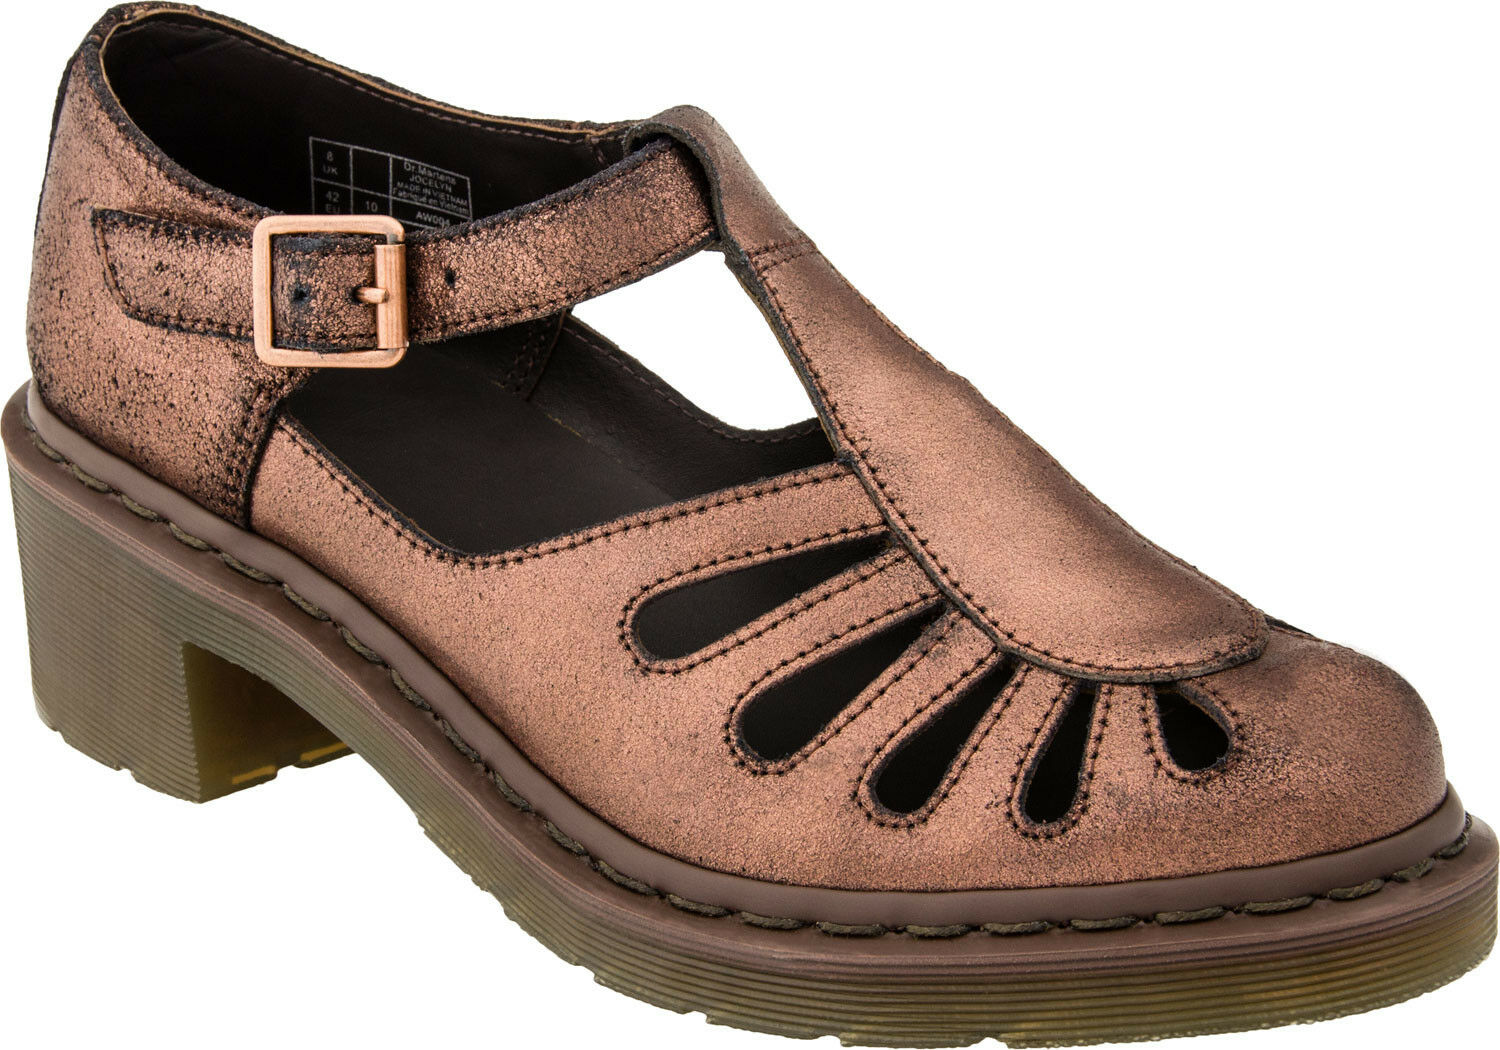 Dr. Martens donna`s donna`s donna`s Jocelyn T-Bar Sandal Copper Leather US 8 EU 39 LAST  286e8b